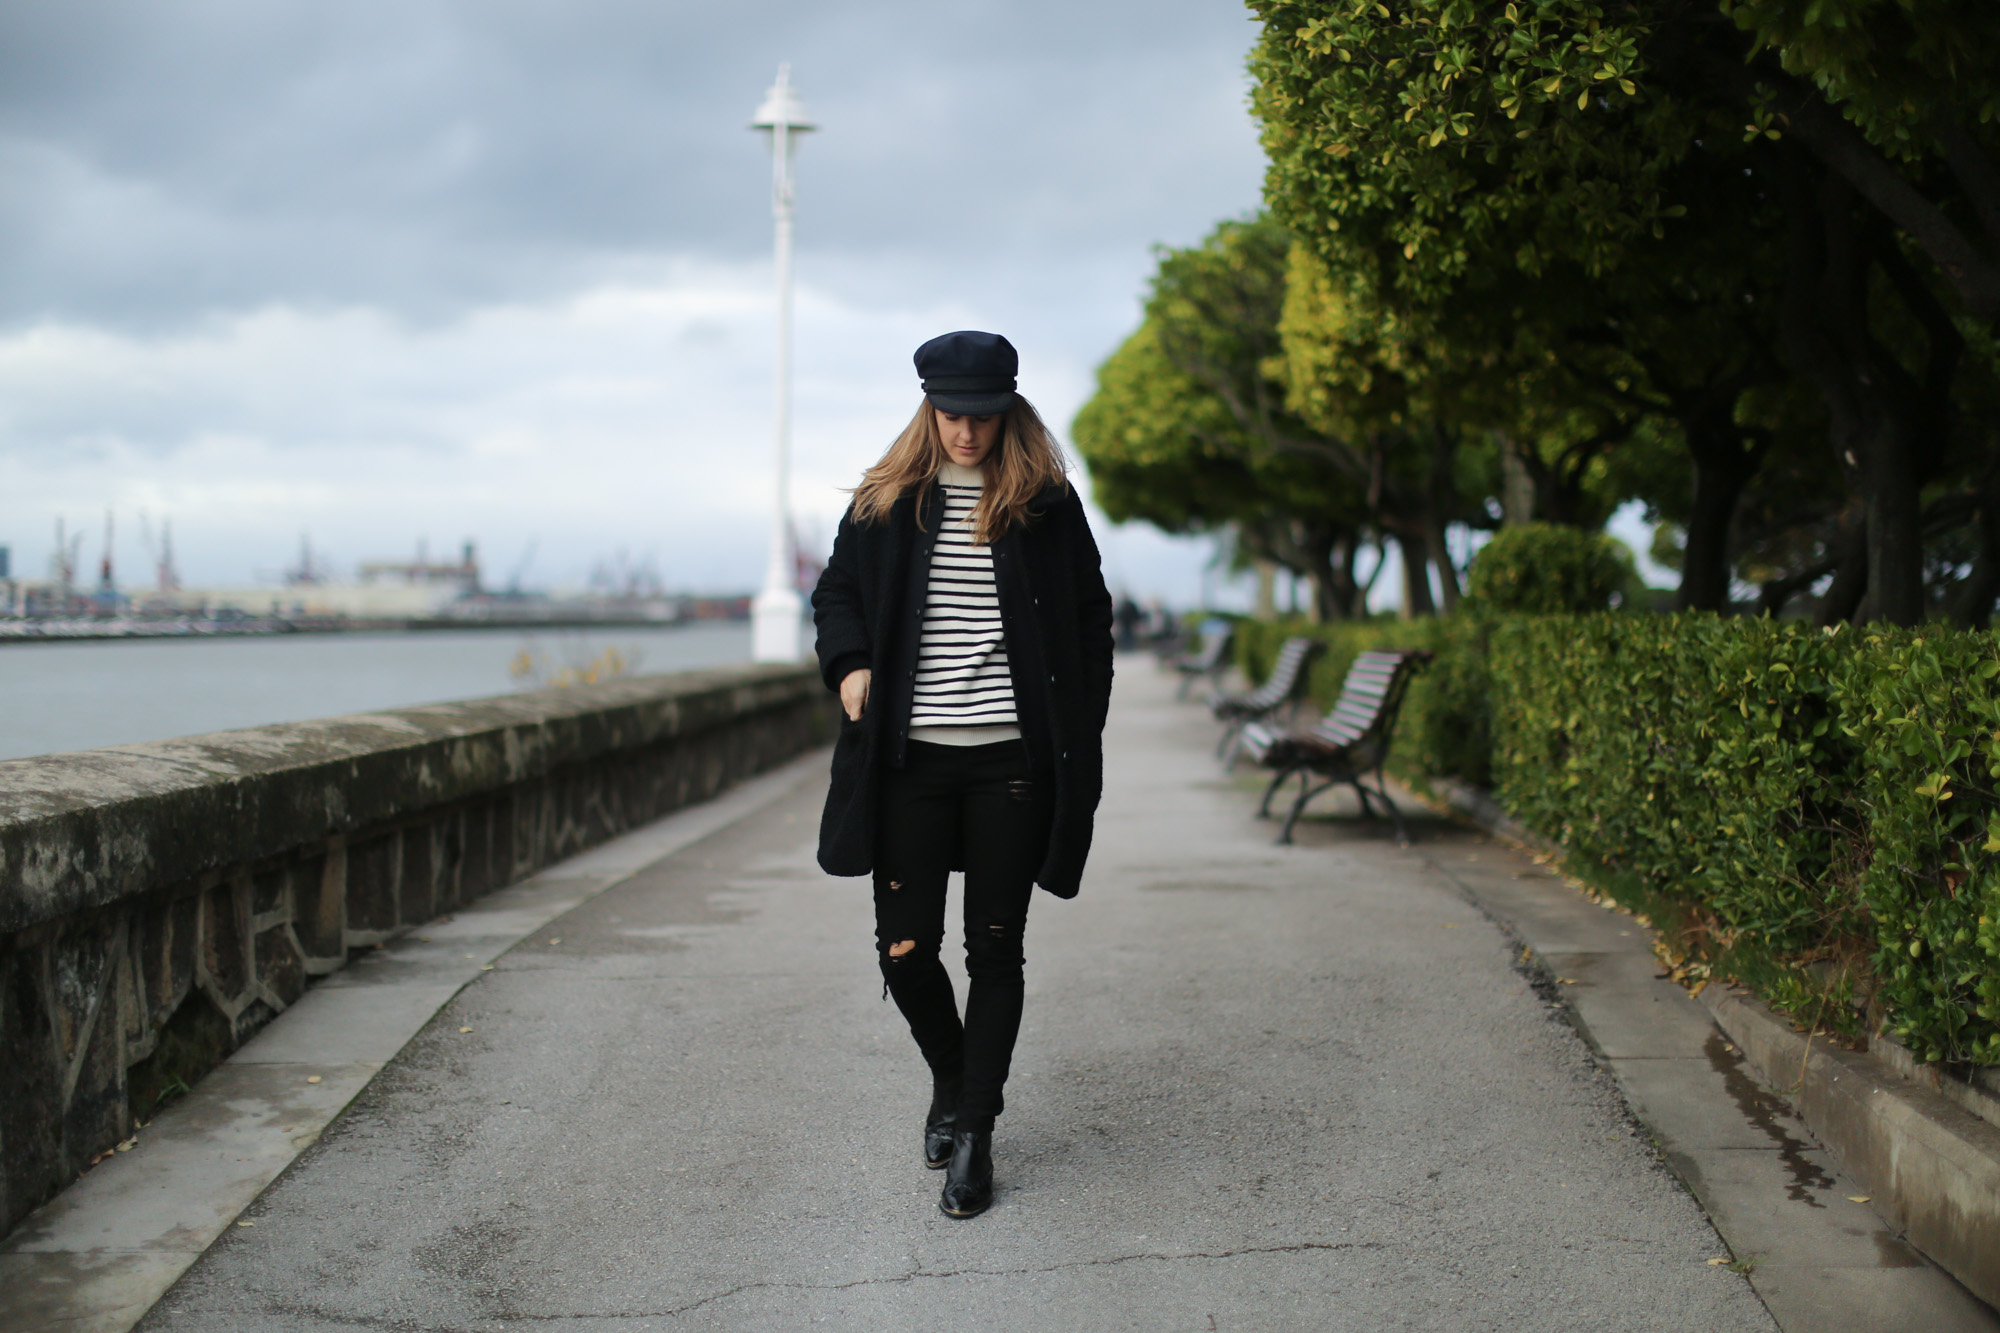 Clochet-streetstyle-saint-james-mariniere-cap-cowboy-boots-suiteblanco-coat-10